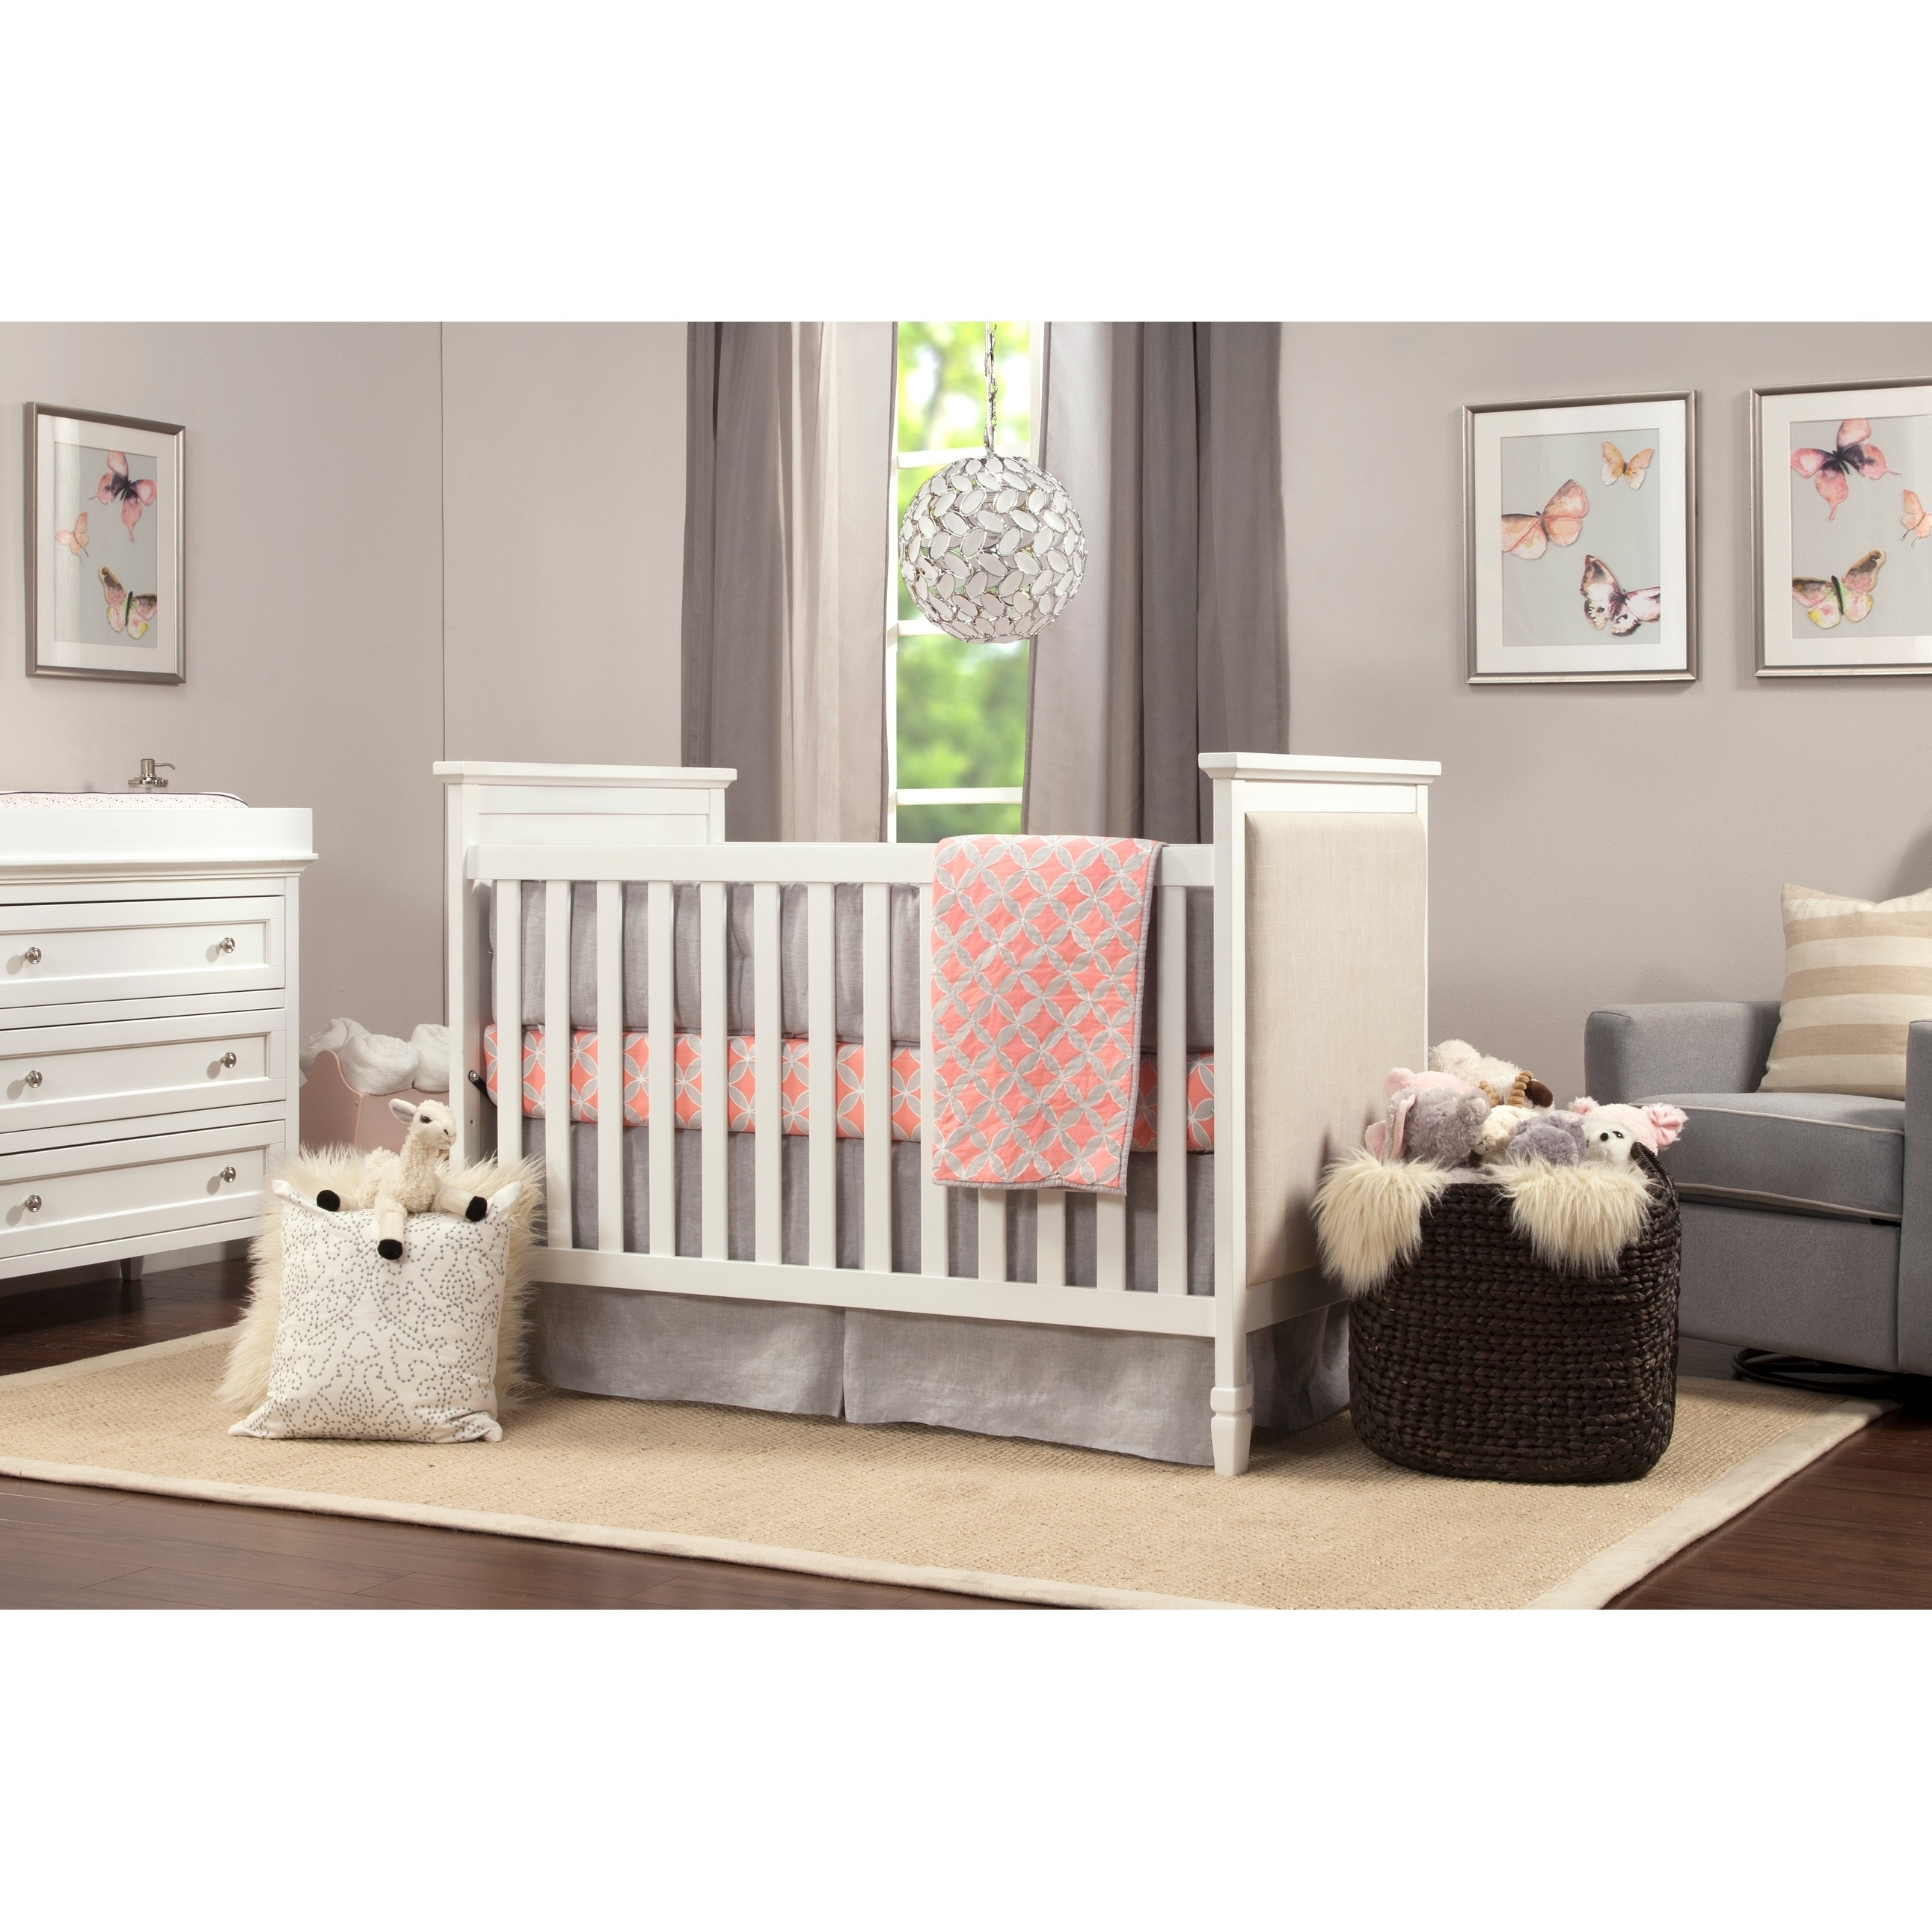 DaVinci Lila 3 in 1 Upholstered Convertible Crib in White and Oatmeal